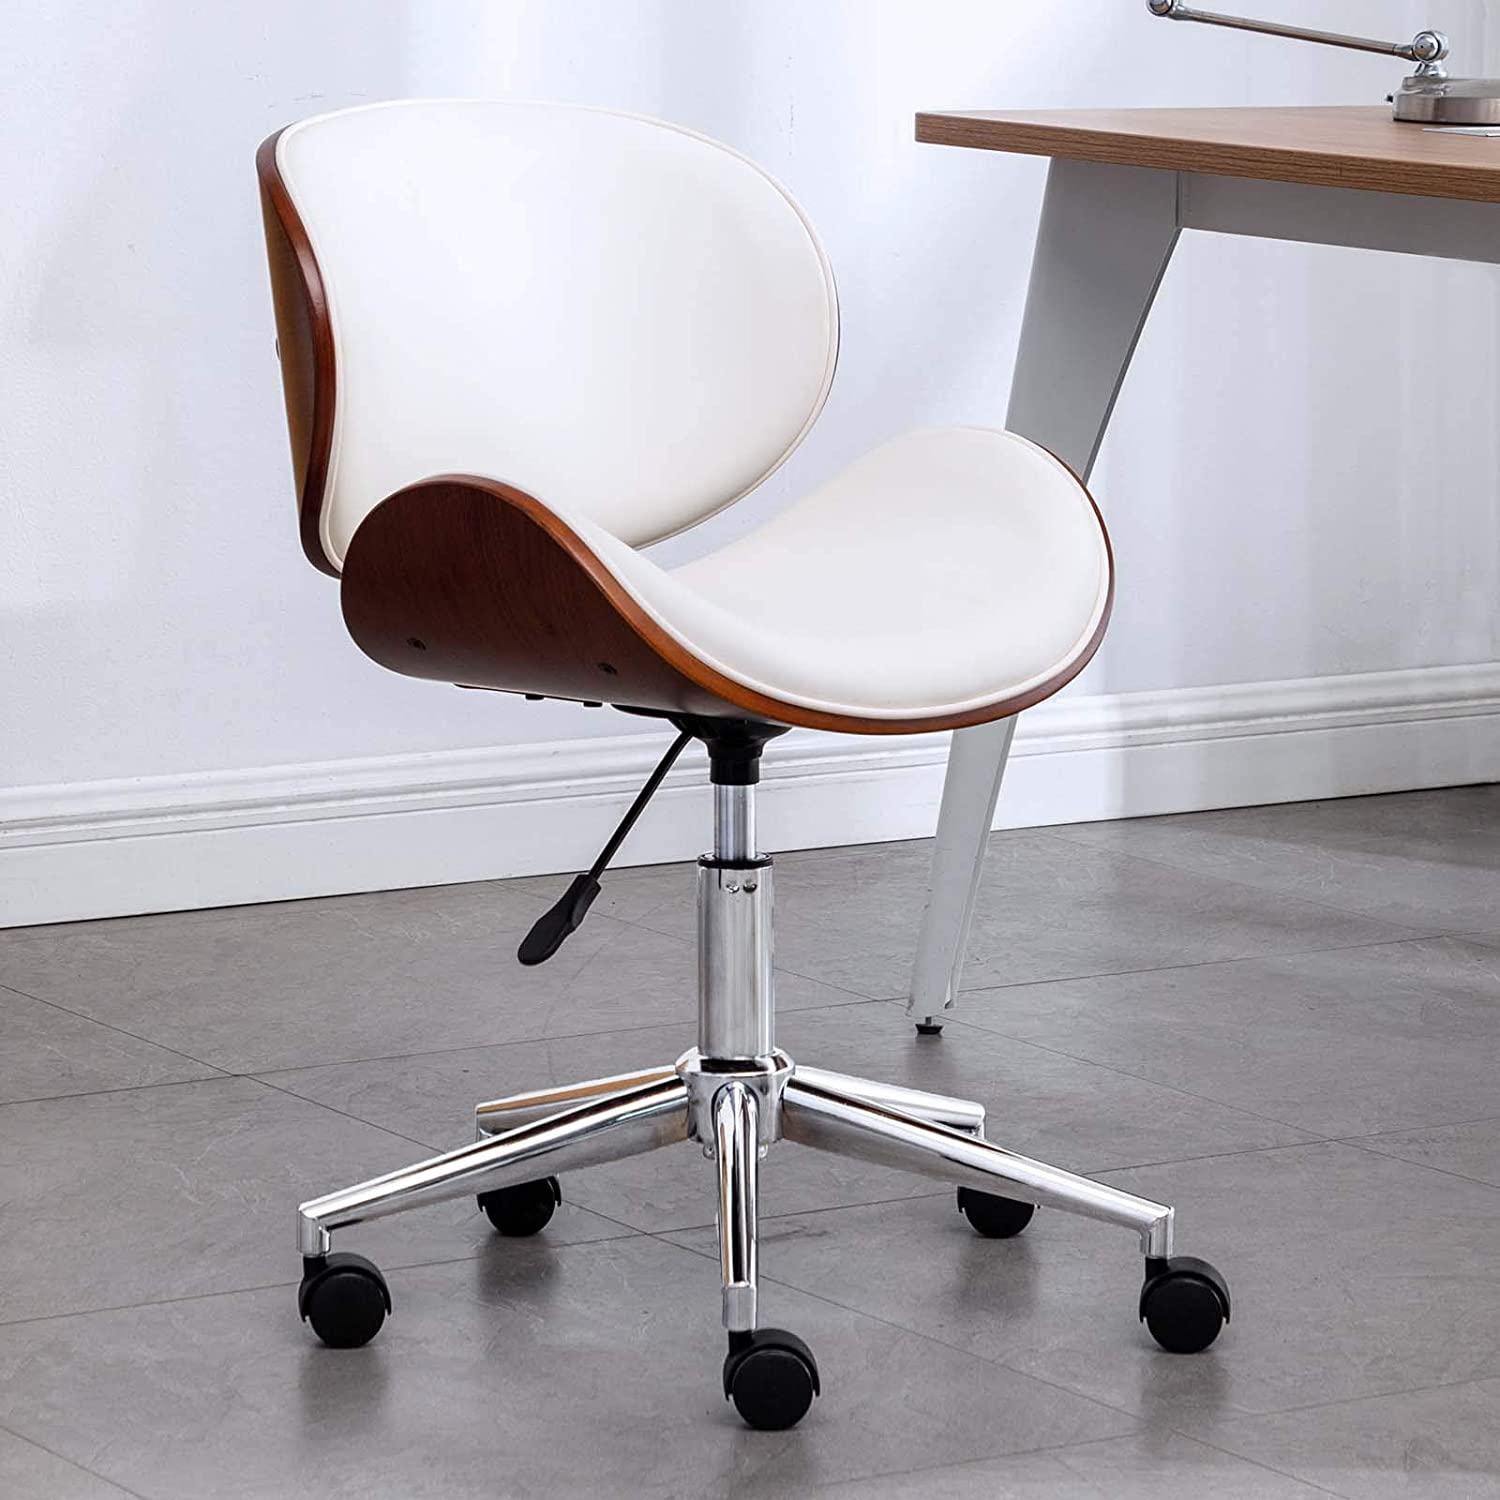 OKAKOPA Home Office Desk Chair, Vintage 360° Swivel Home Office Computer Task Executive Desk Armless Chair w/Adjustable Height (White Leather)